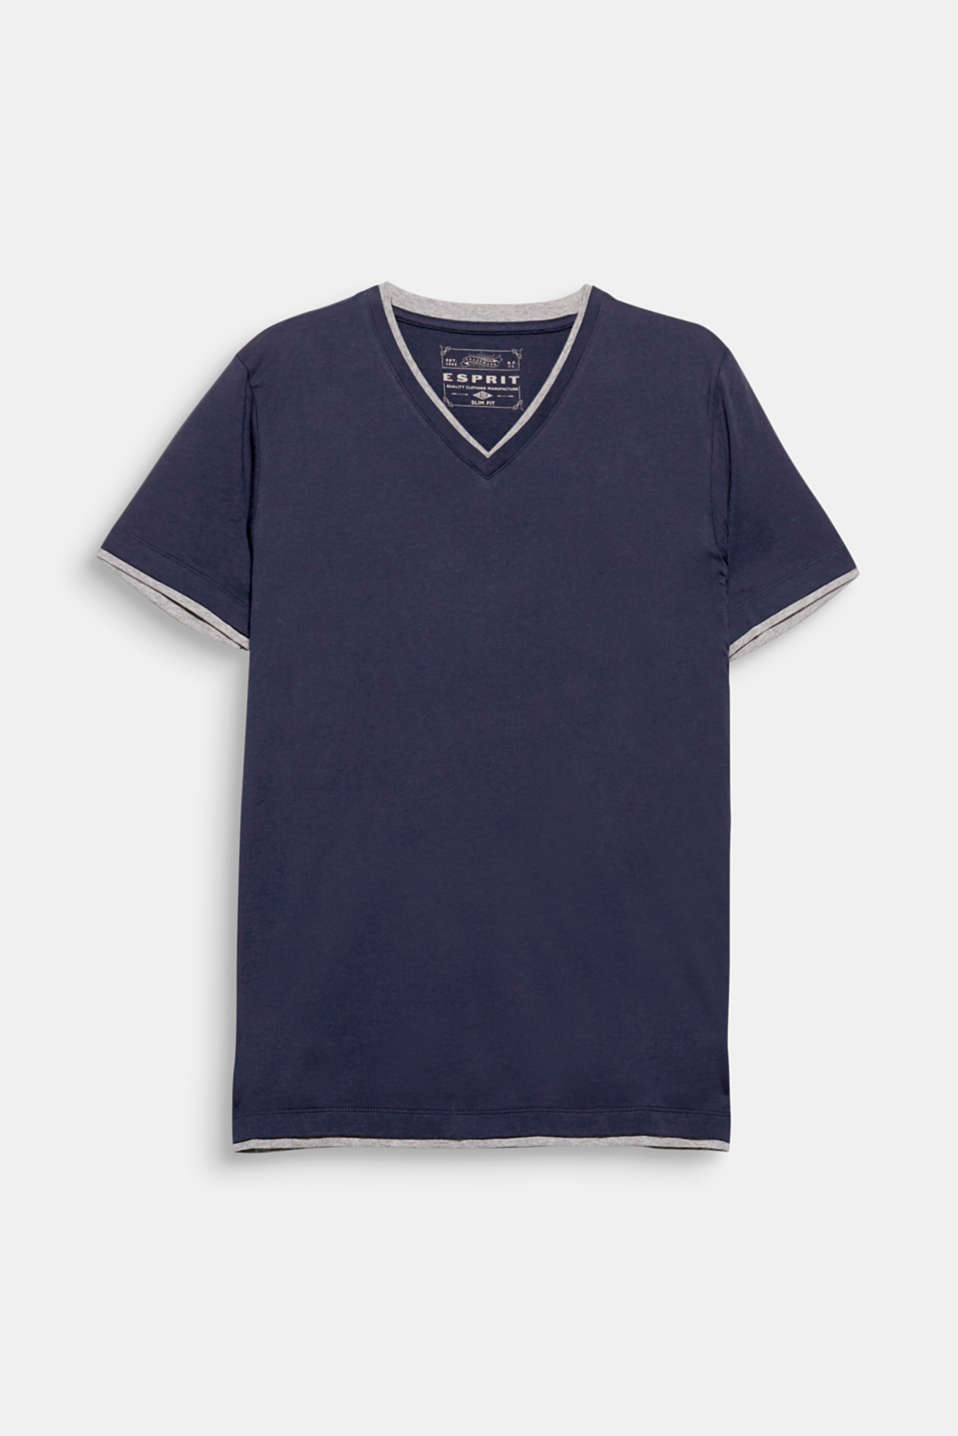 T-shirt in soft blended cotton with a V-neck